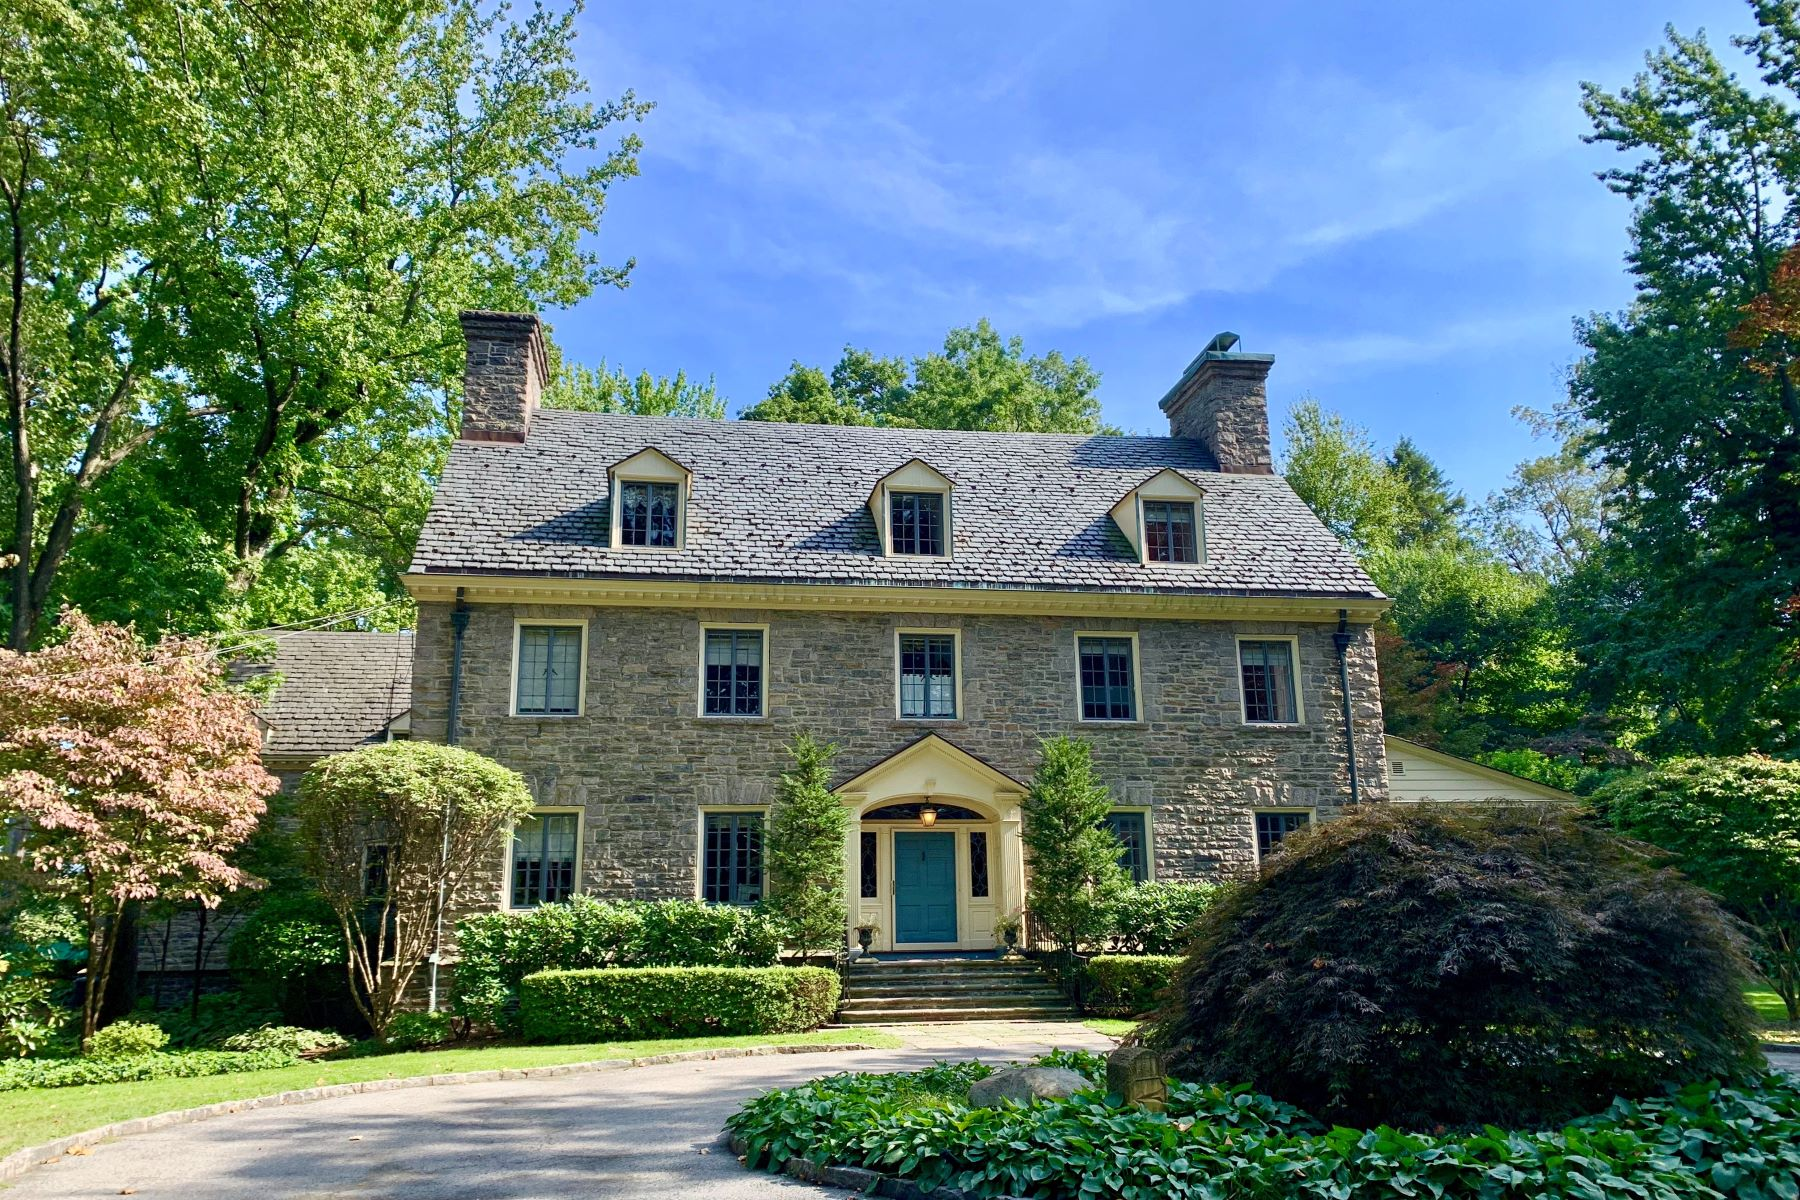 Single Family Homes for Sale at Magnificent Fieldston Georgian Revival Estate 4730 Fieldston Road Riverdale, New York 10471 United States